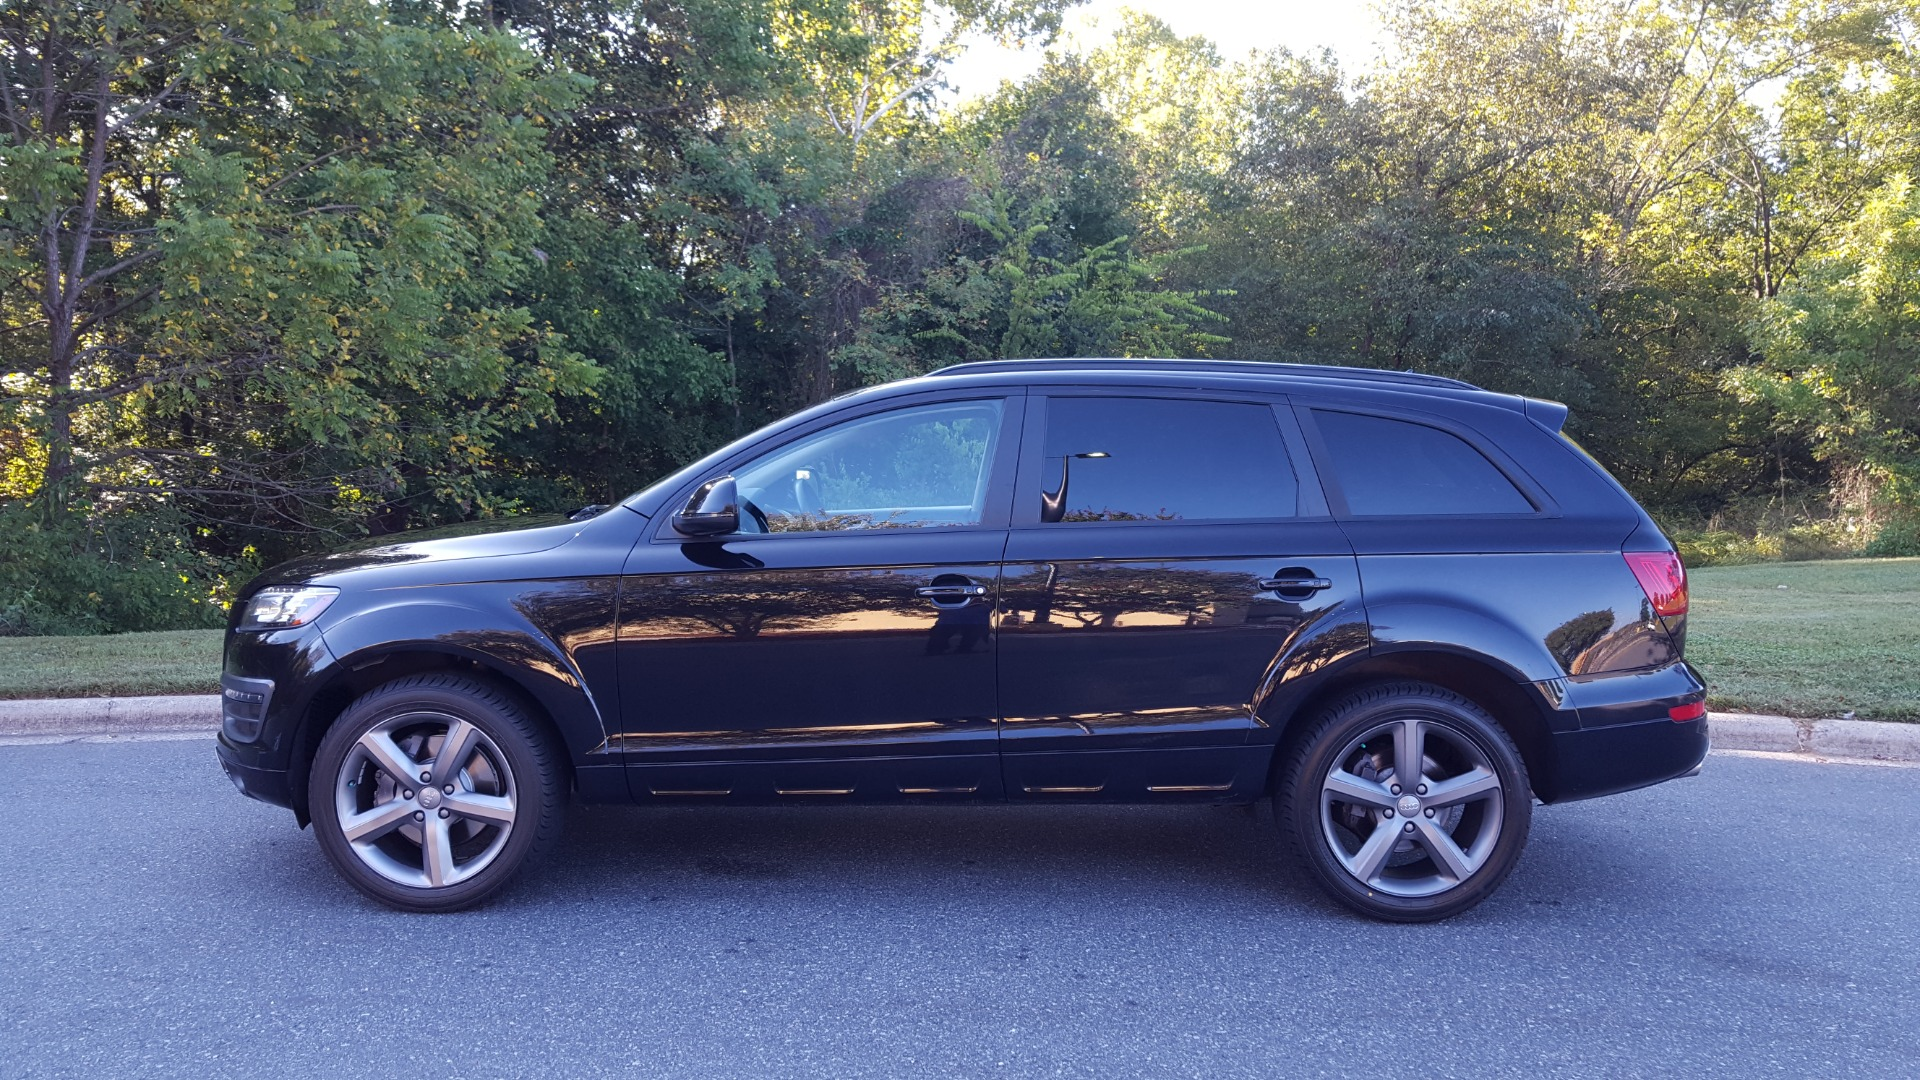 Used 2015 Audi Q7 3.0T PREMIUM PLUS TIPTRONIC / NAV / OFFROAD PLUS / WARM WEATHER / COLD WEAT for sale Sold at Formula Imports in Charlotte NC 28227 2